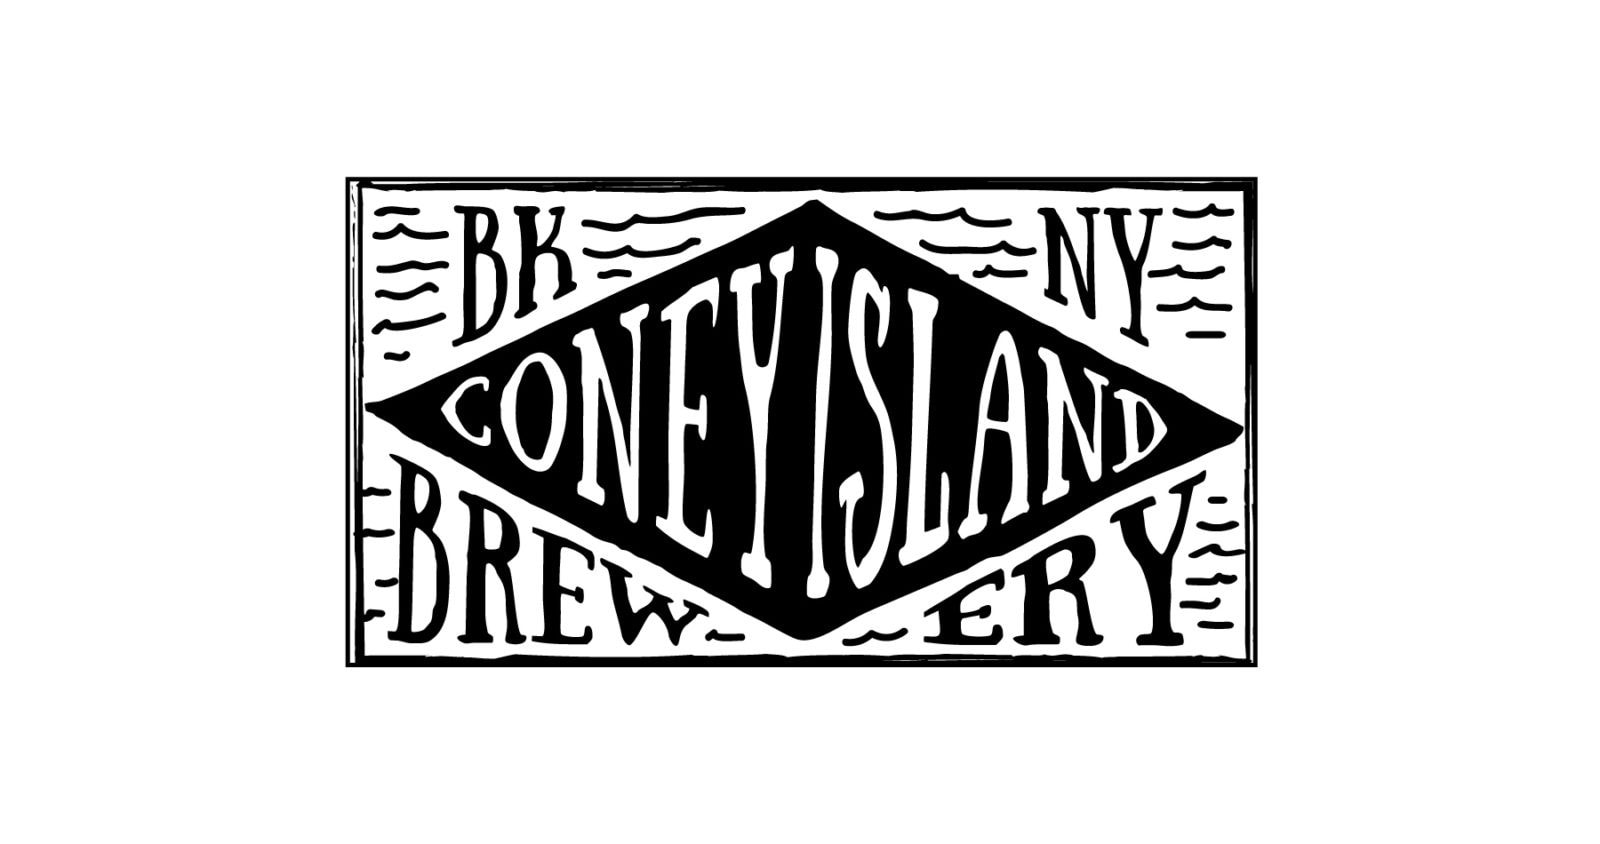 Coney Island Brewery graphic design by Clutch Creative Co. Burlington, VT